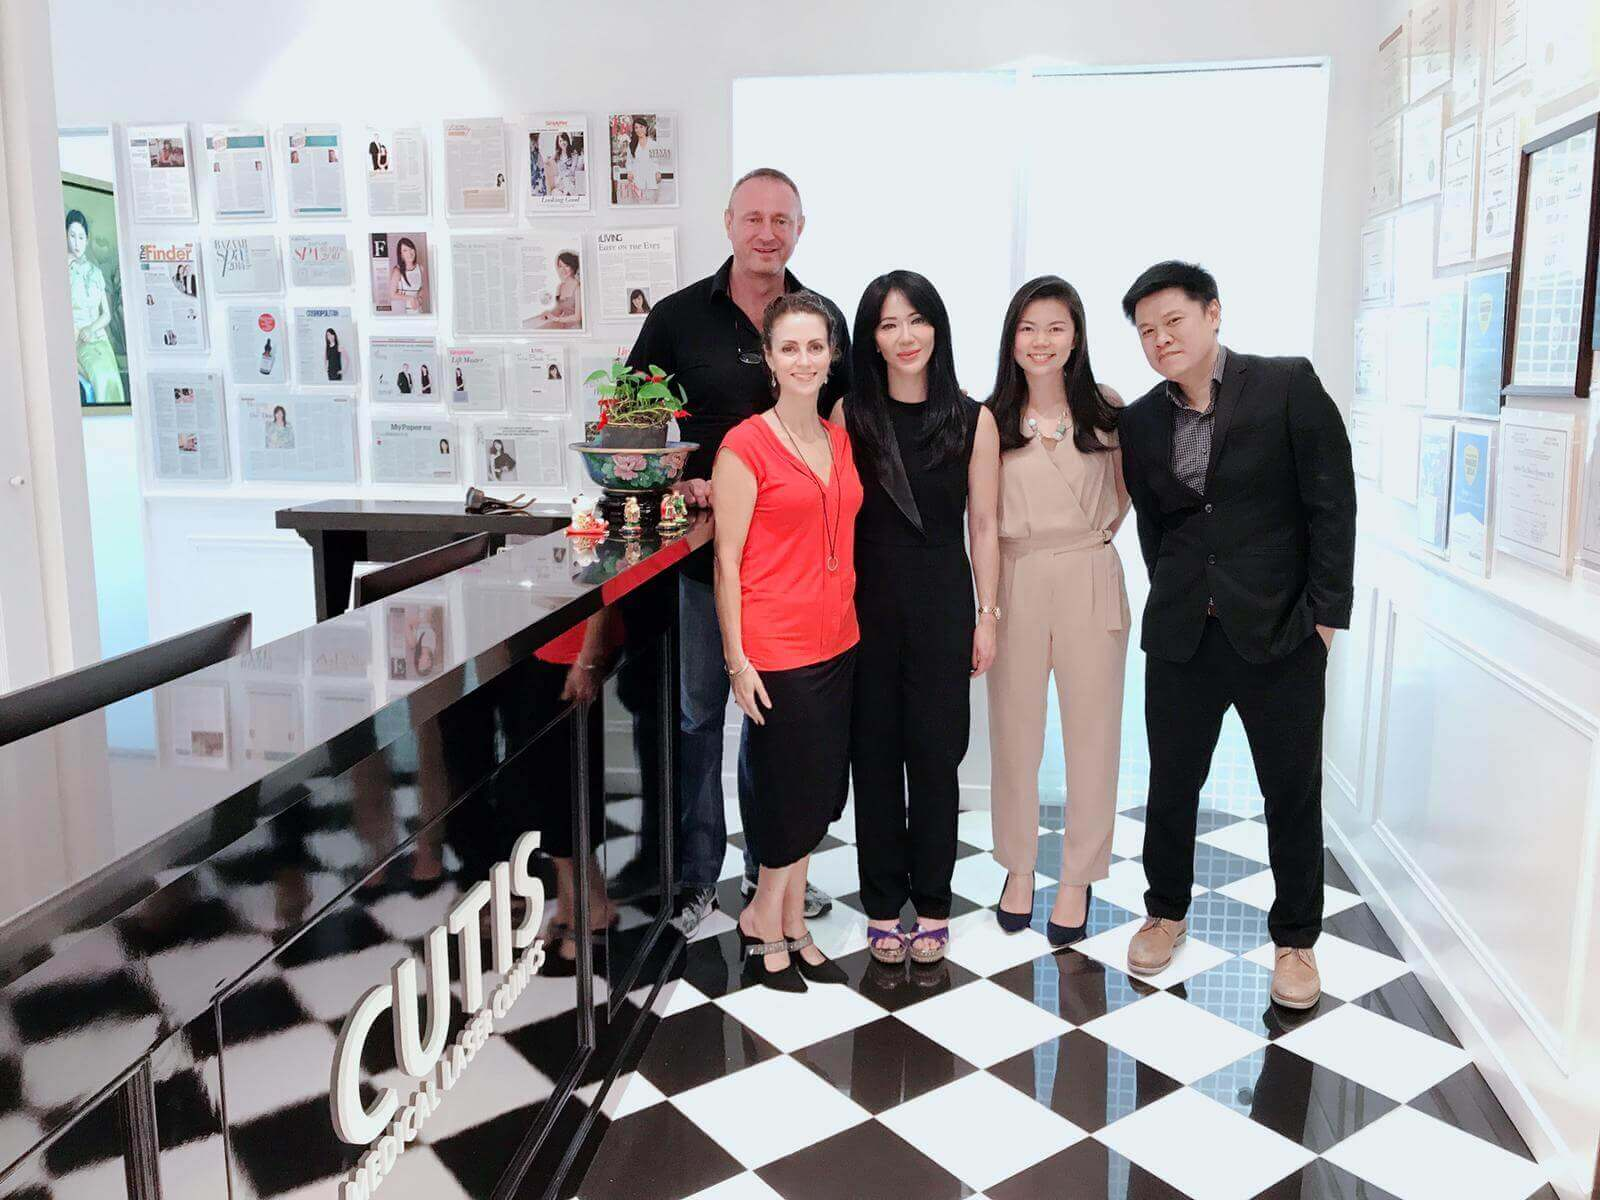 CoolSculpting-Traning-Centre-of-Excellence-Signing-1